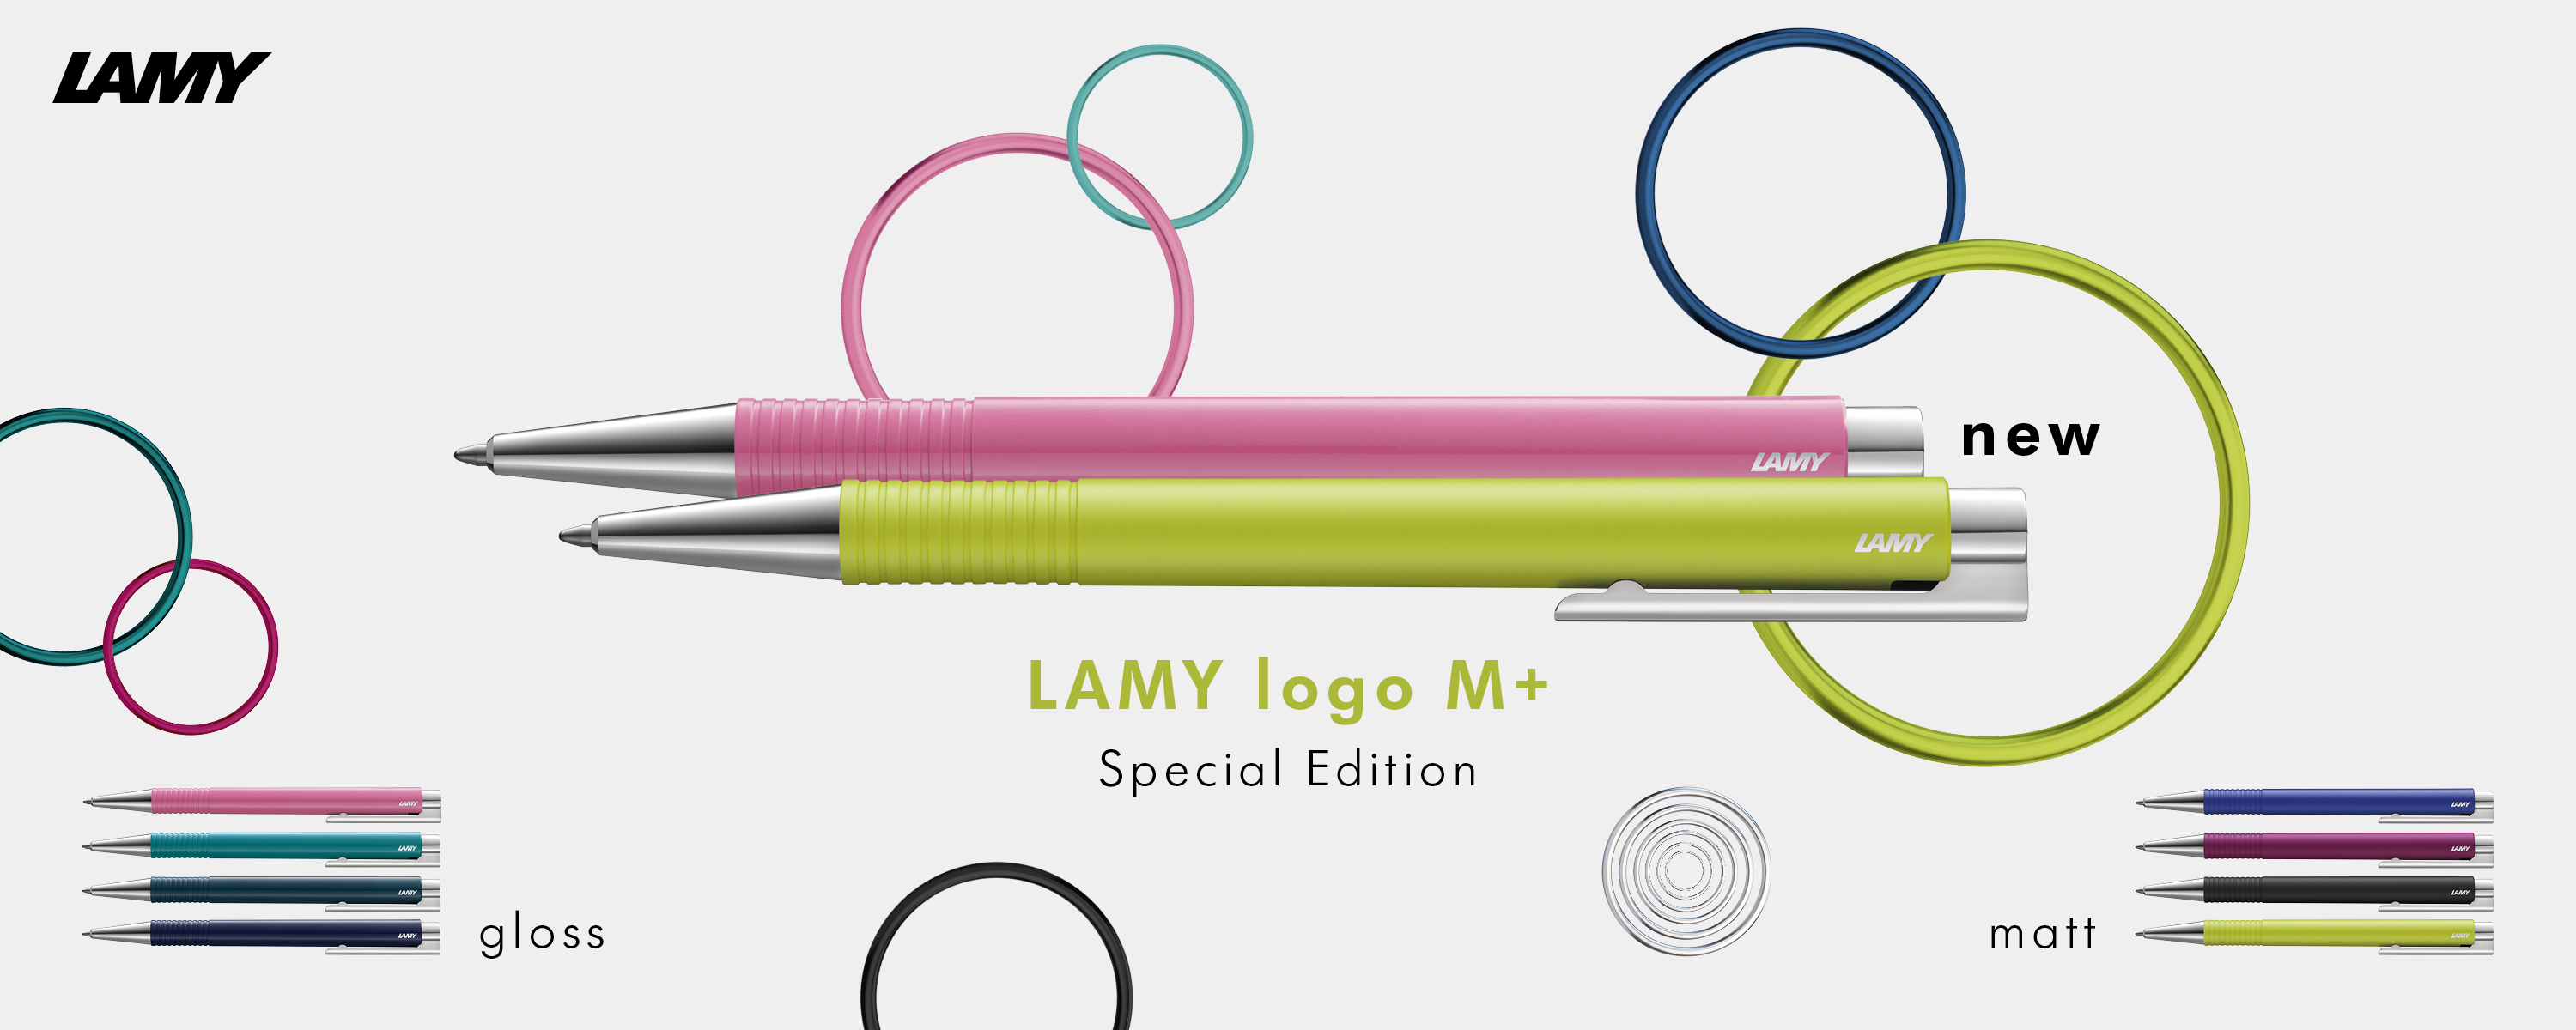 LAMY logo M+ special edition